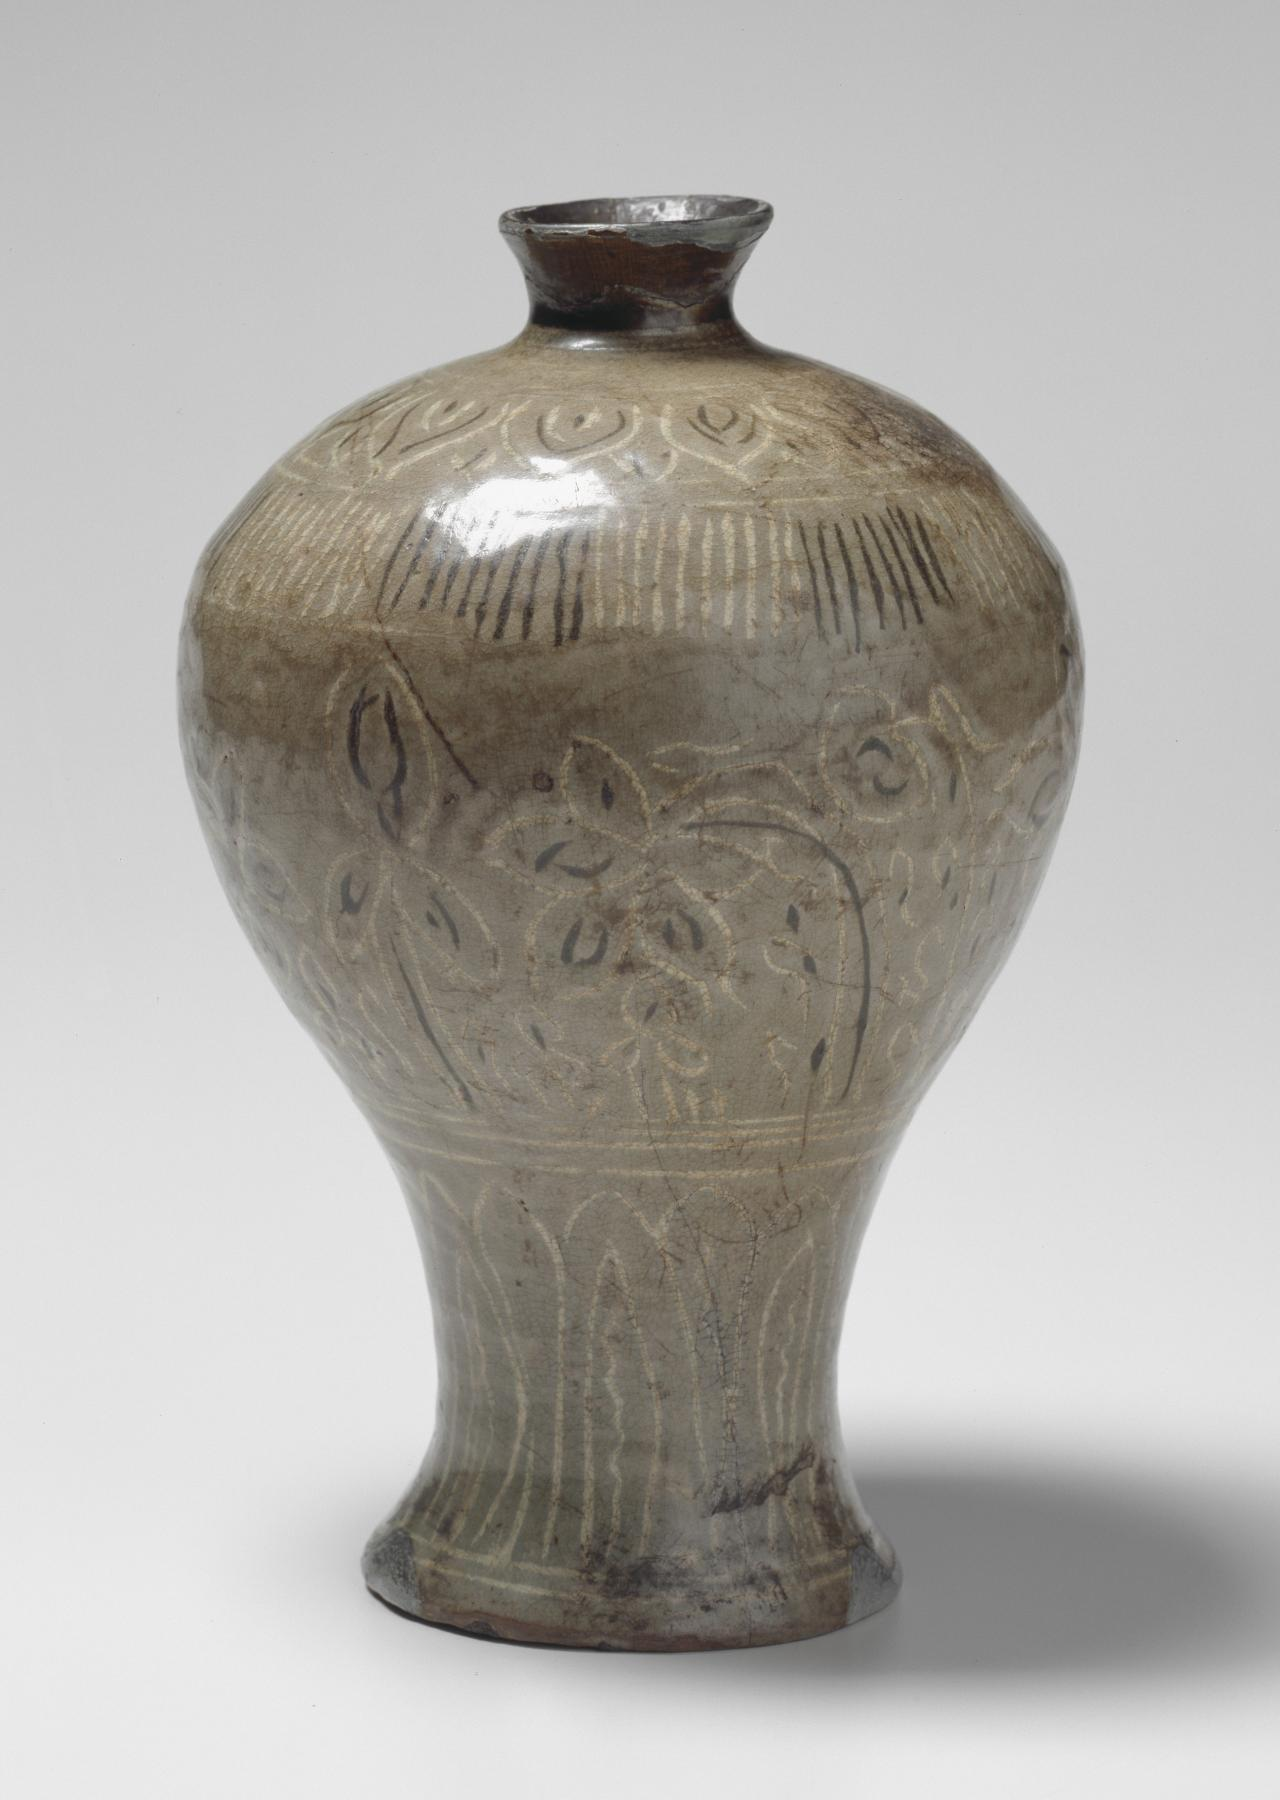 Vase with inlay floral design